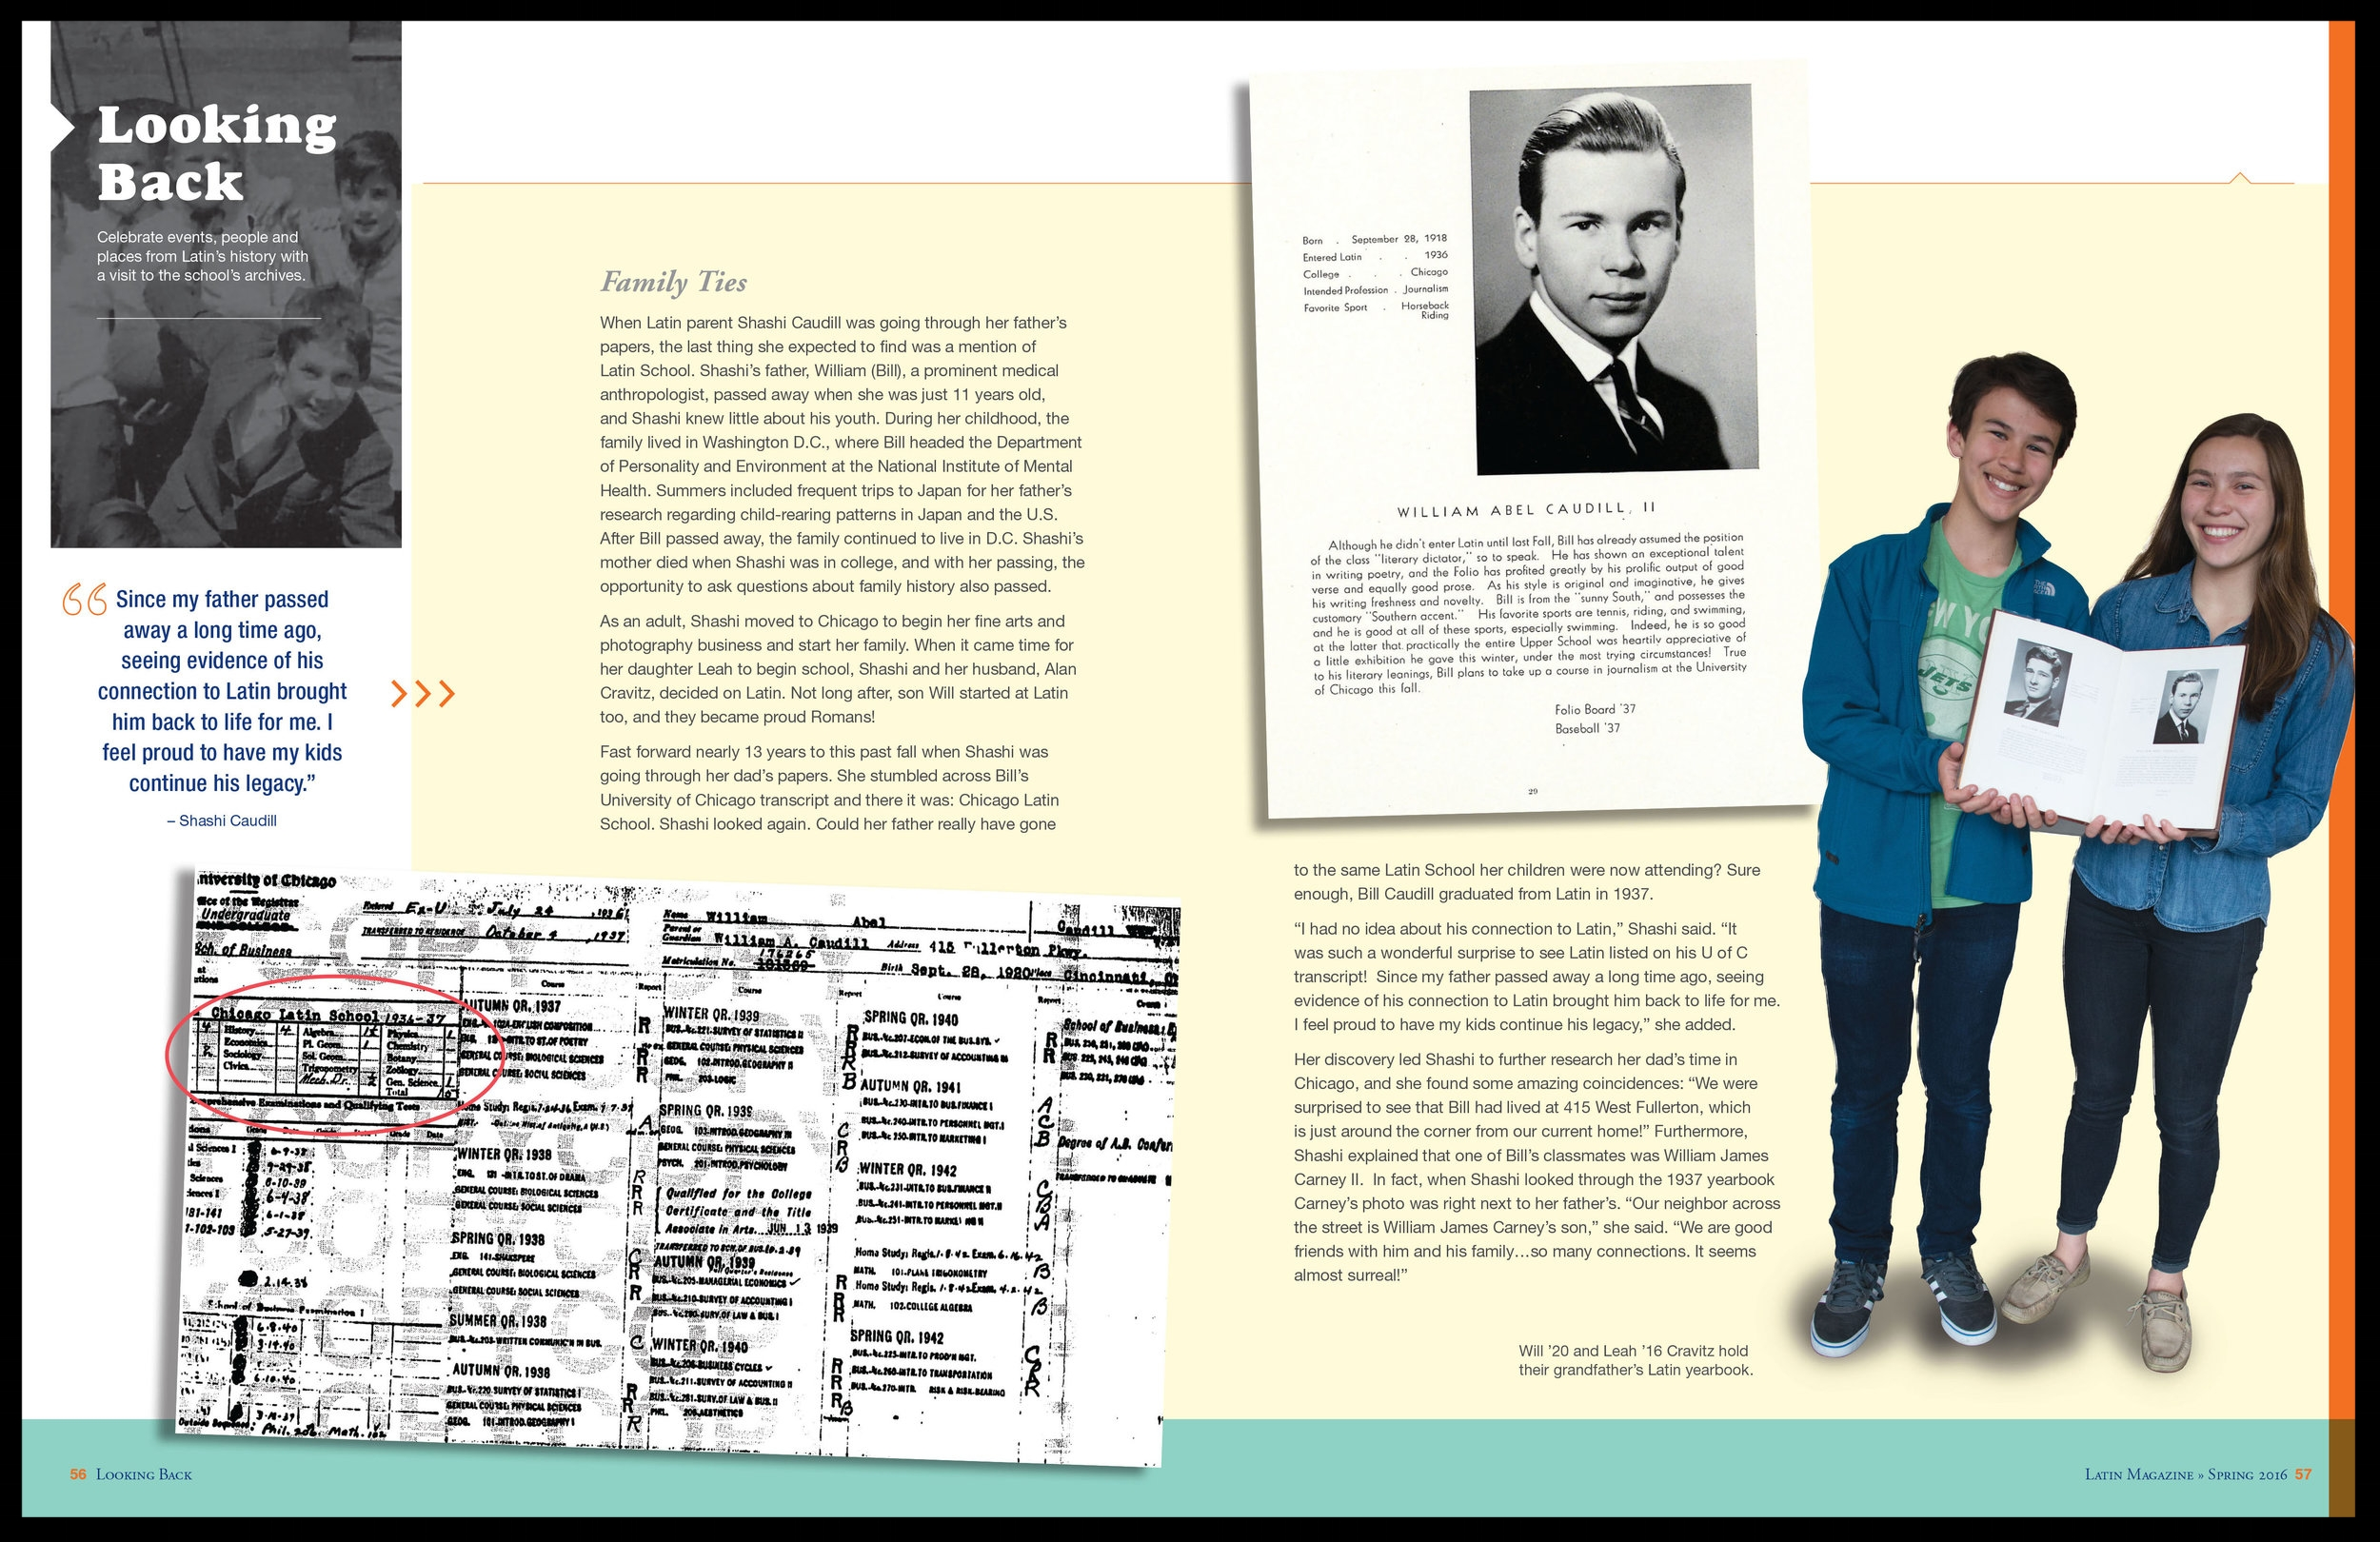 The last pages of the magazine uses archival materials to highlight Latin's connection with the past